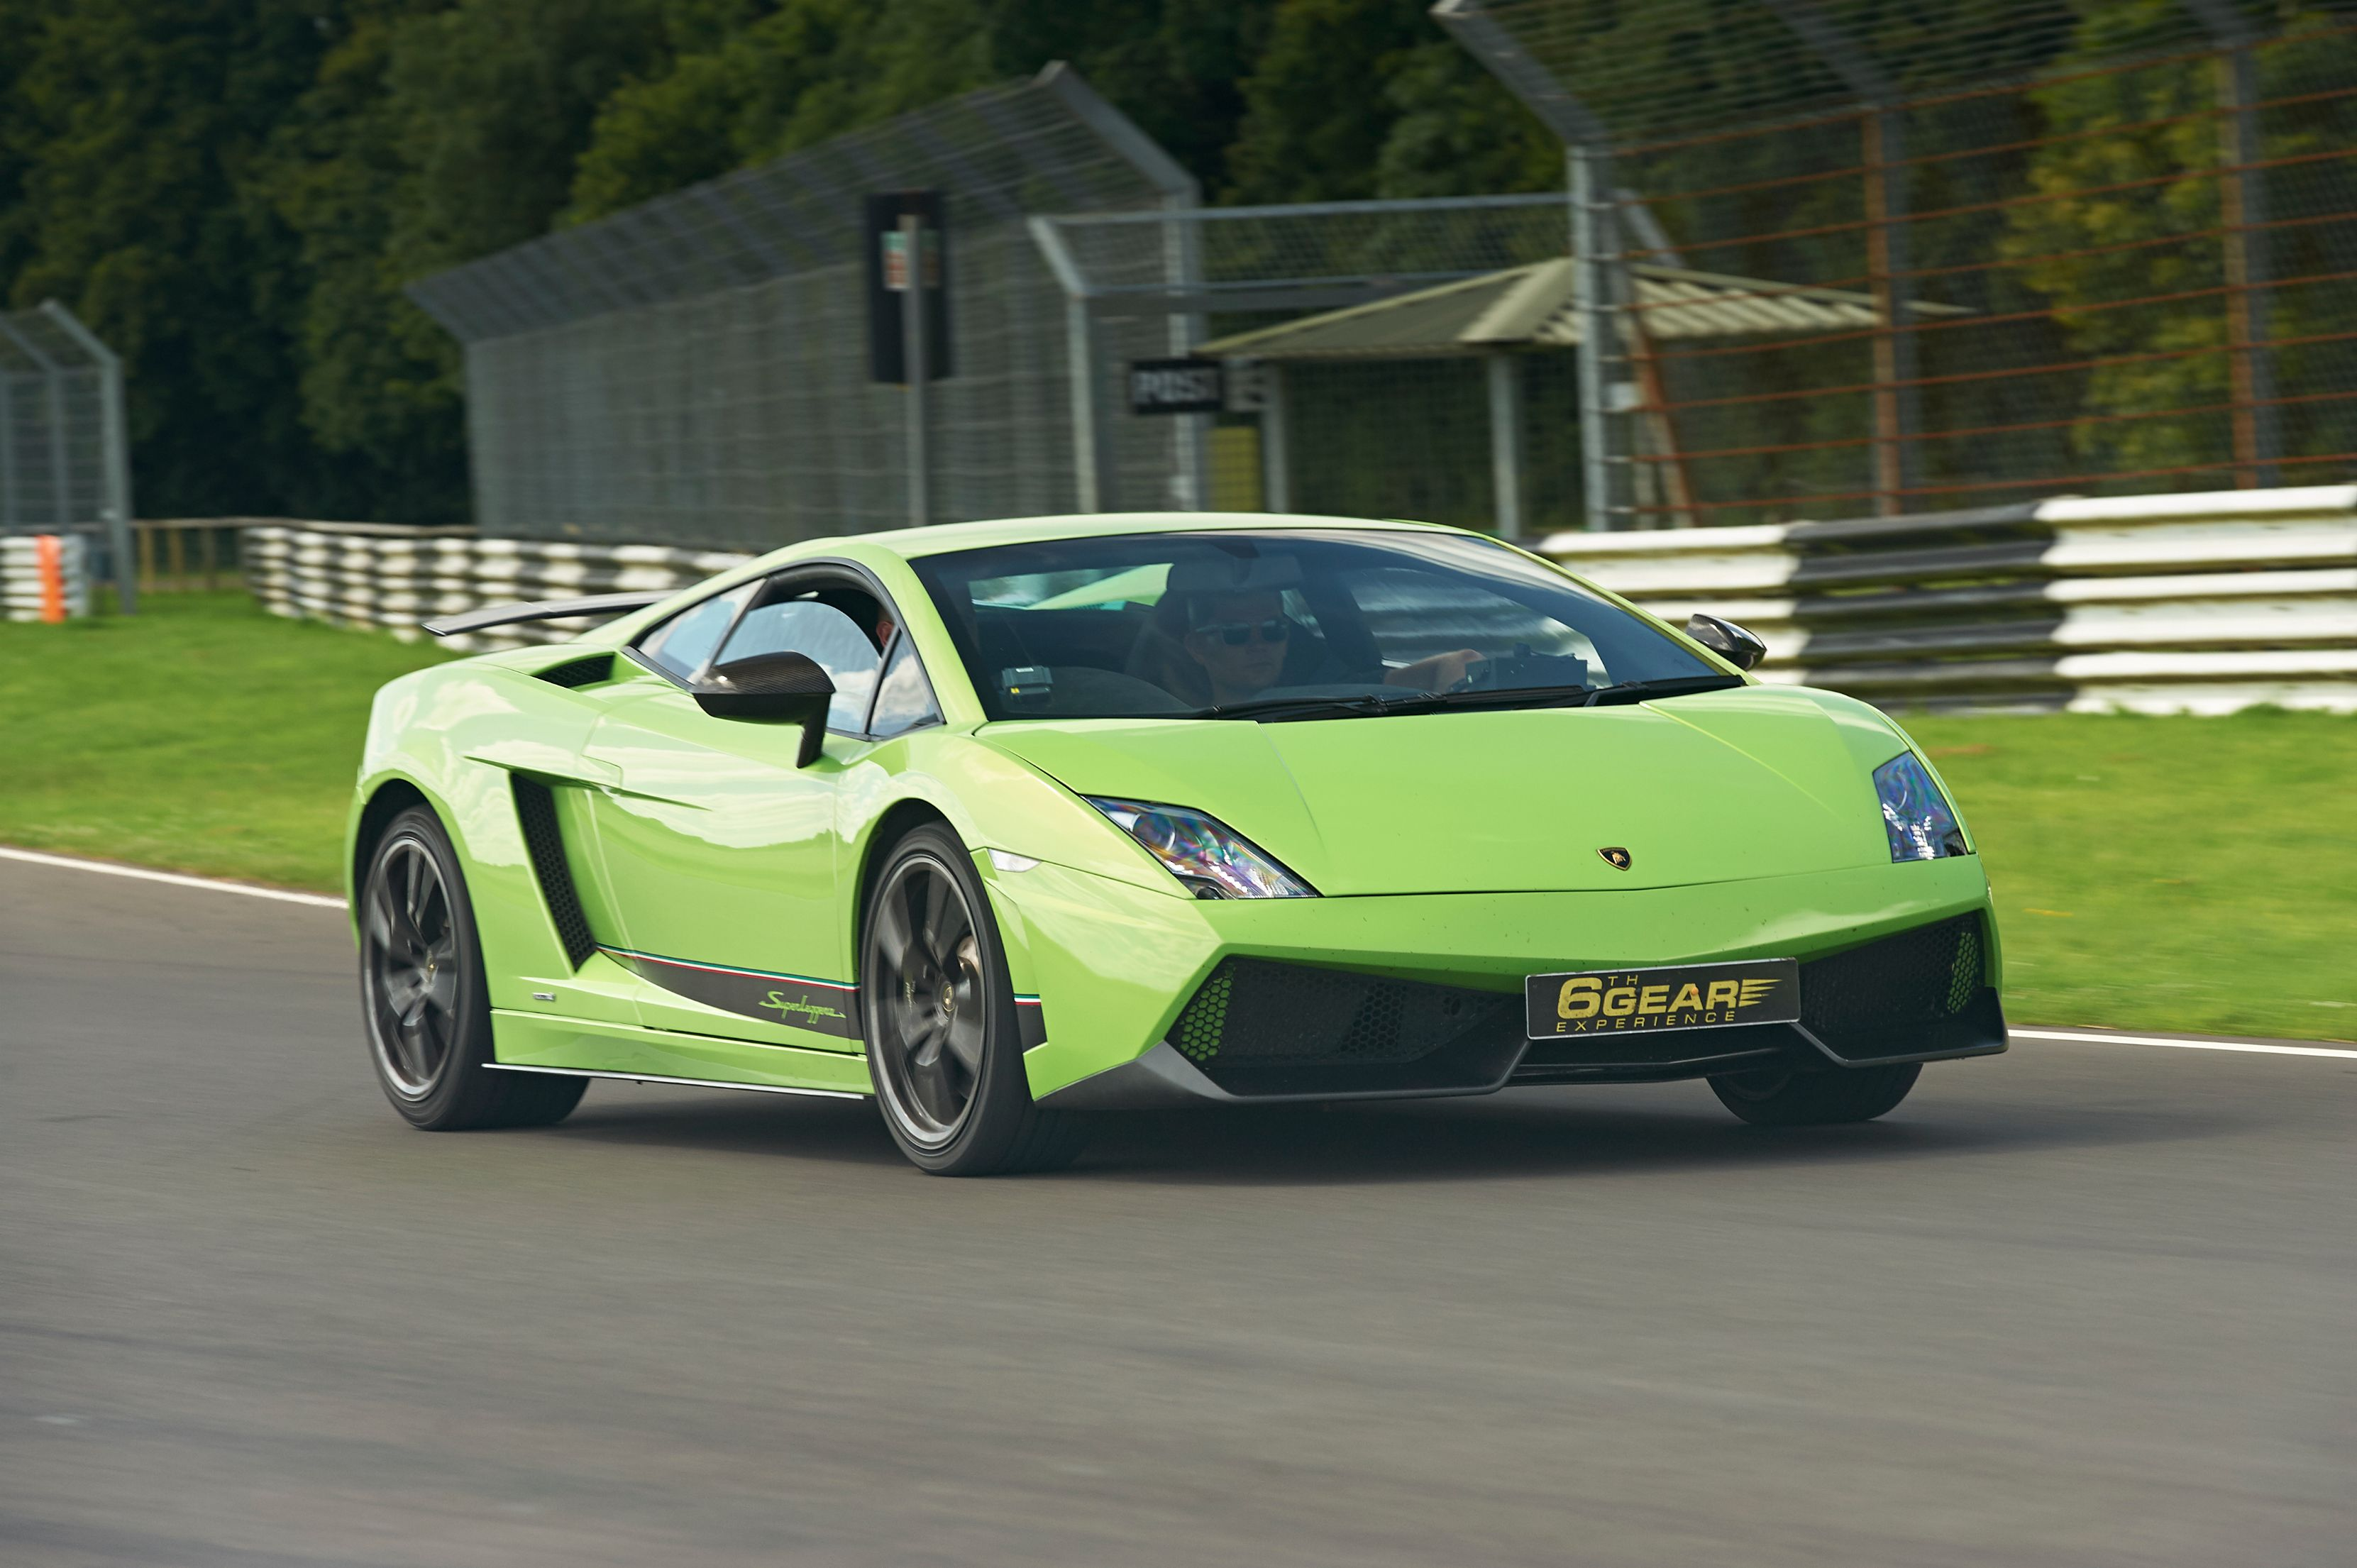 Lamborghini Gallardo LP570 Superleggera Driving Experience